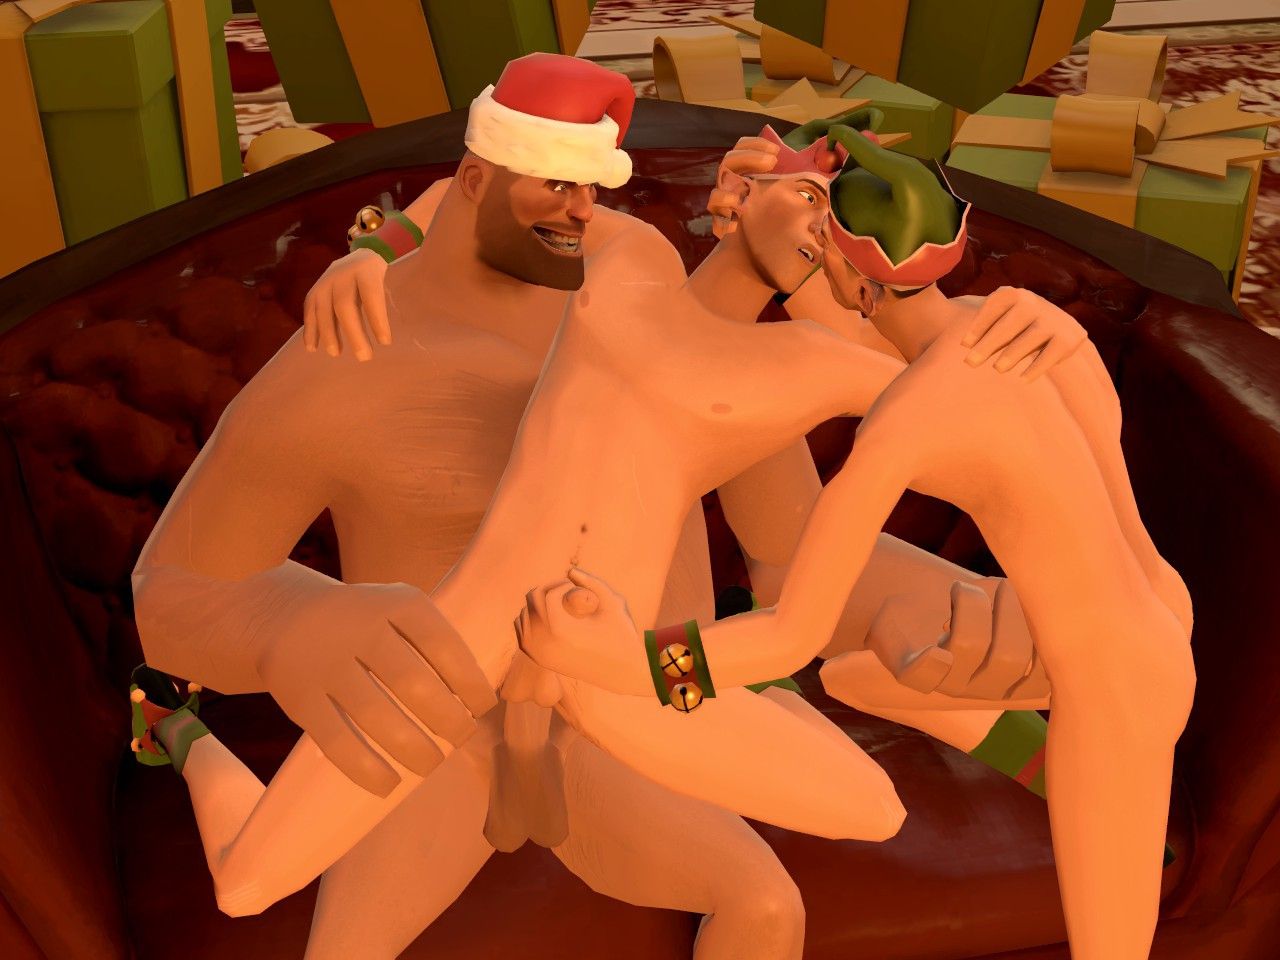 Gmod rouge nude mod exposed scenes